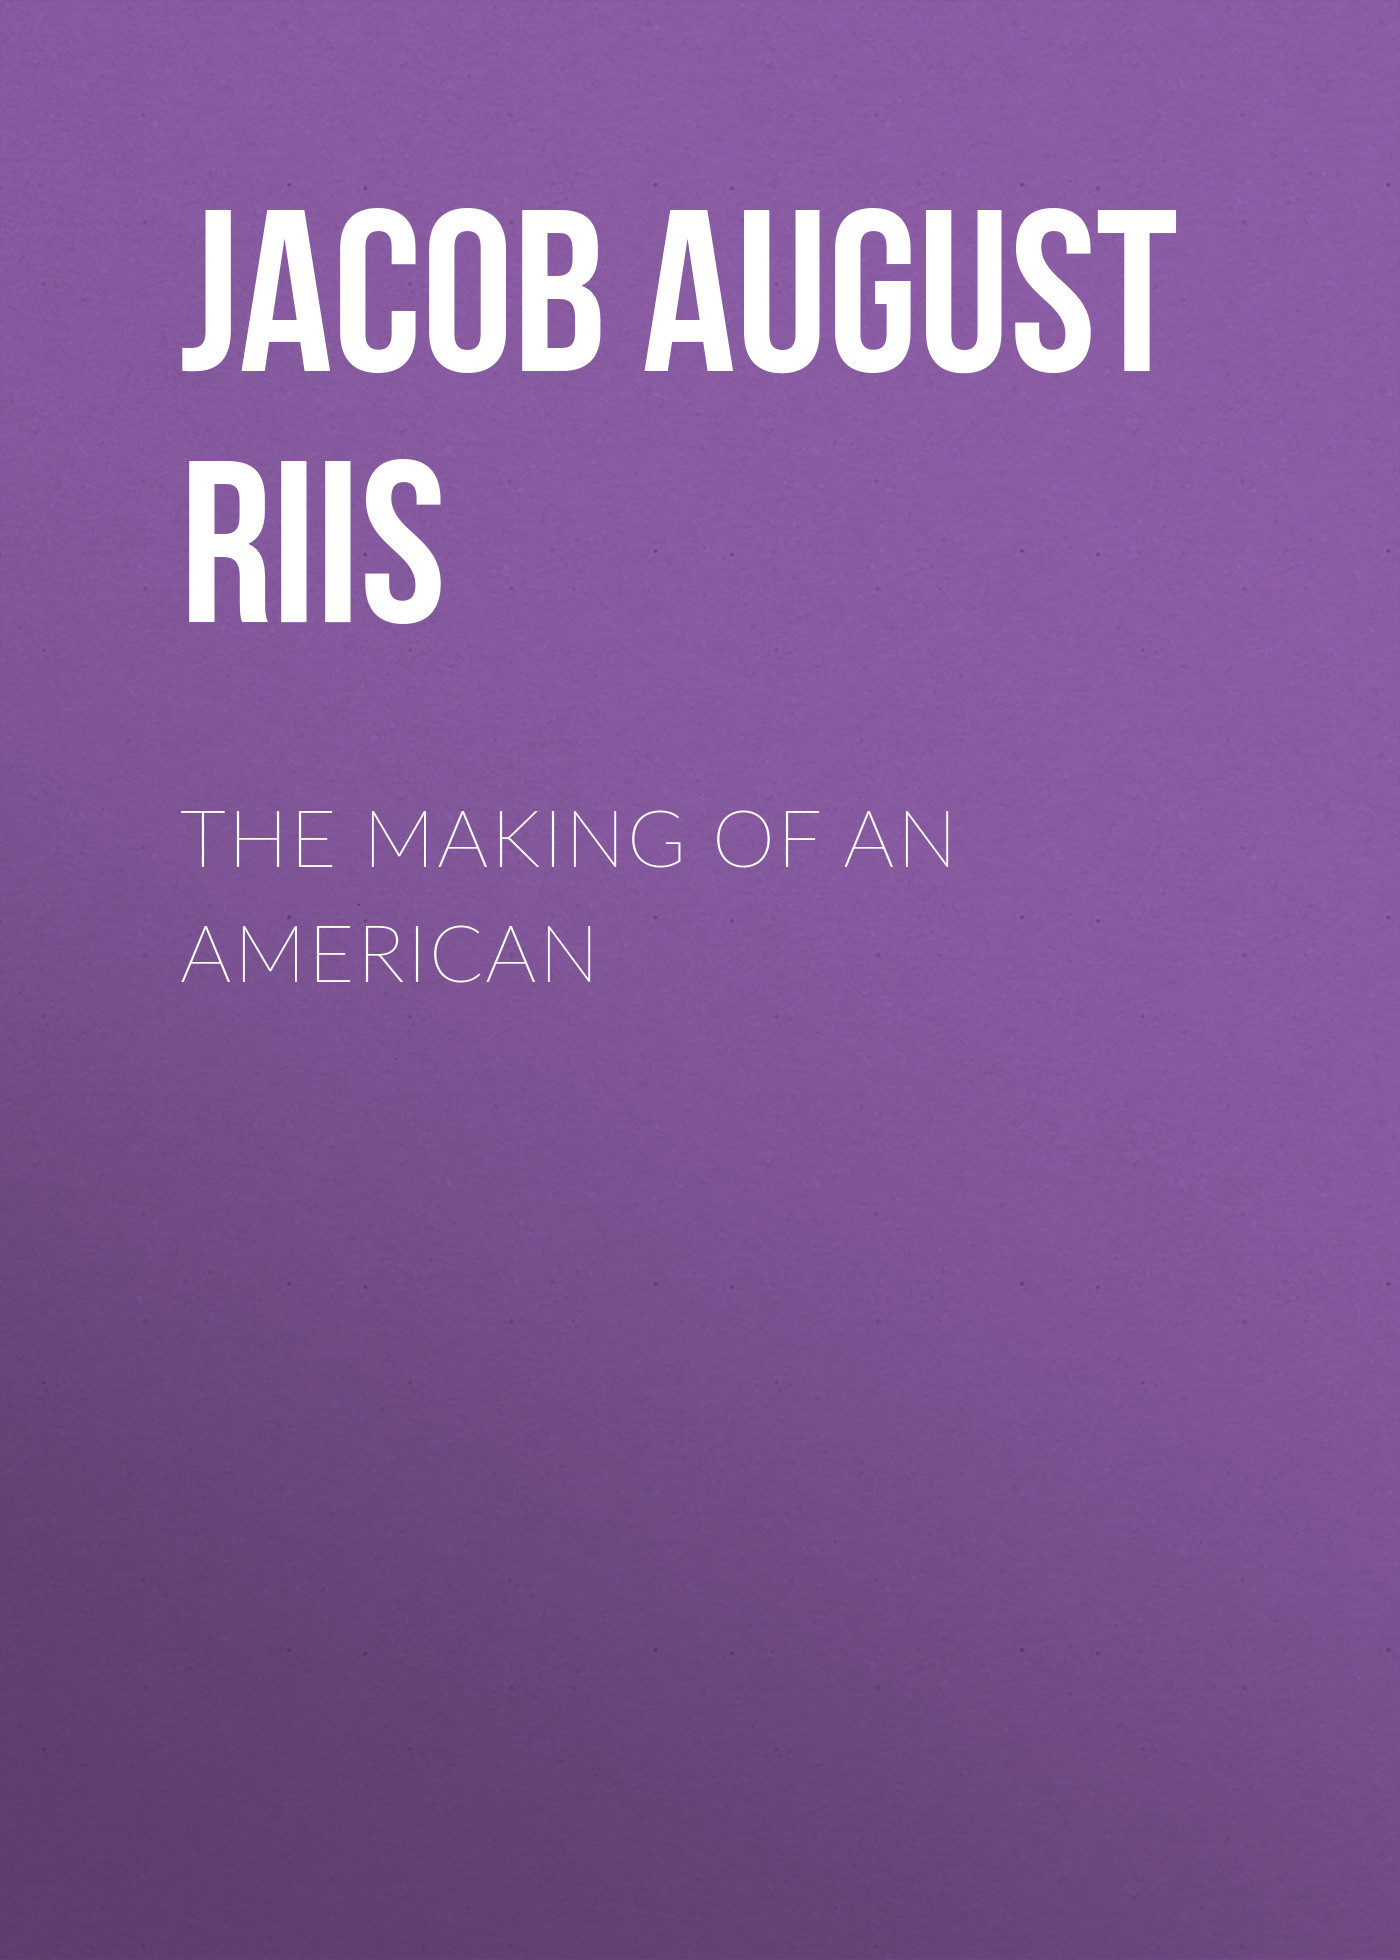 Jacob August Riis The Making of an American an american tragedy